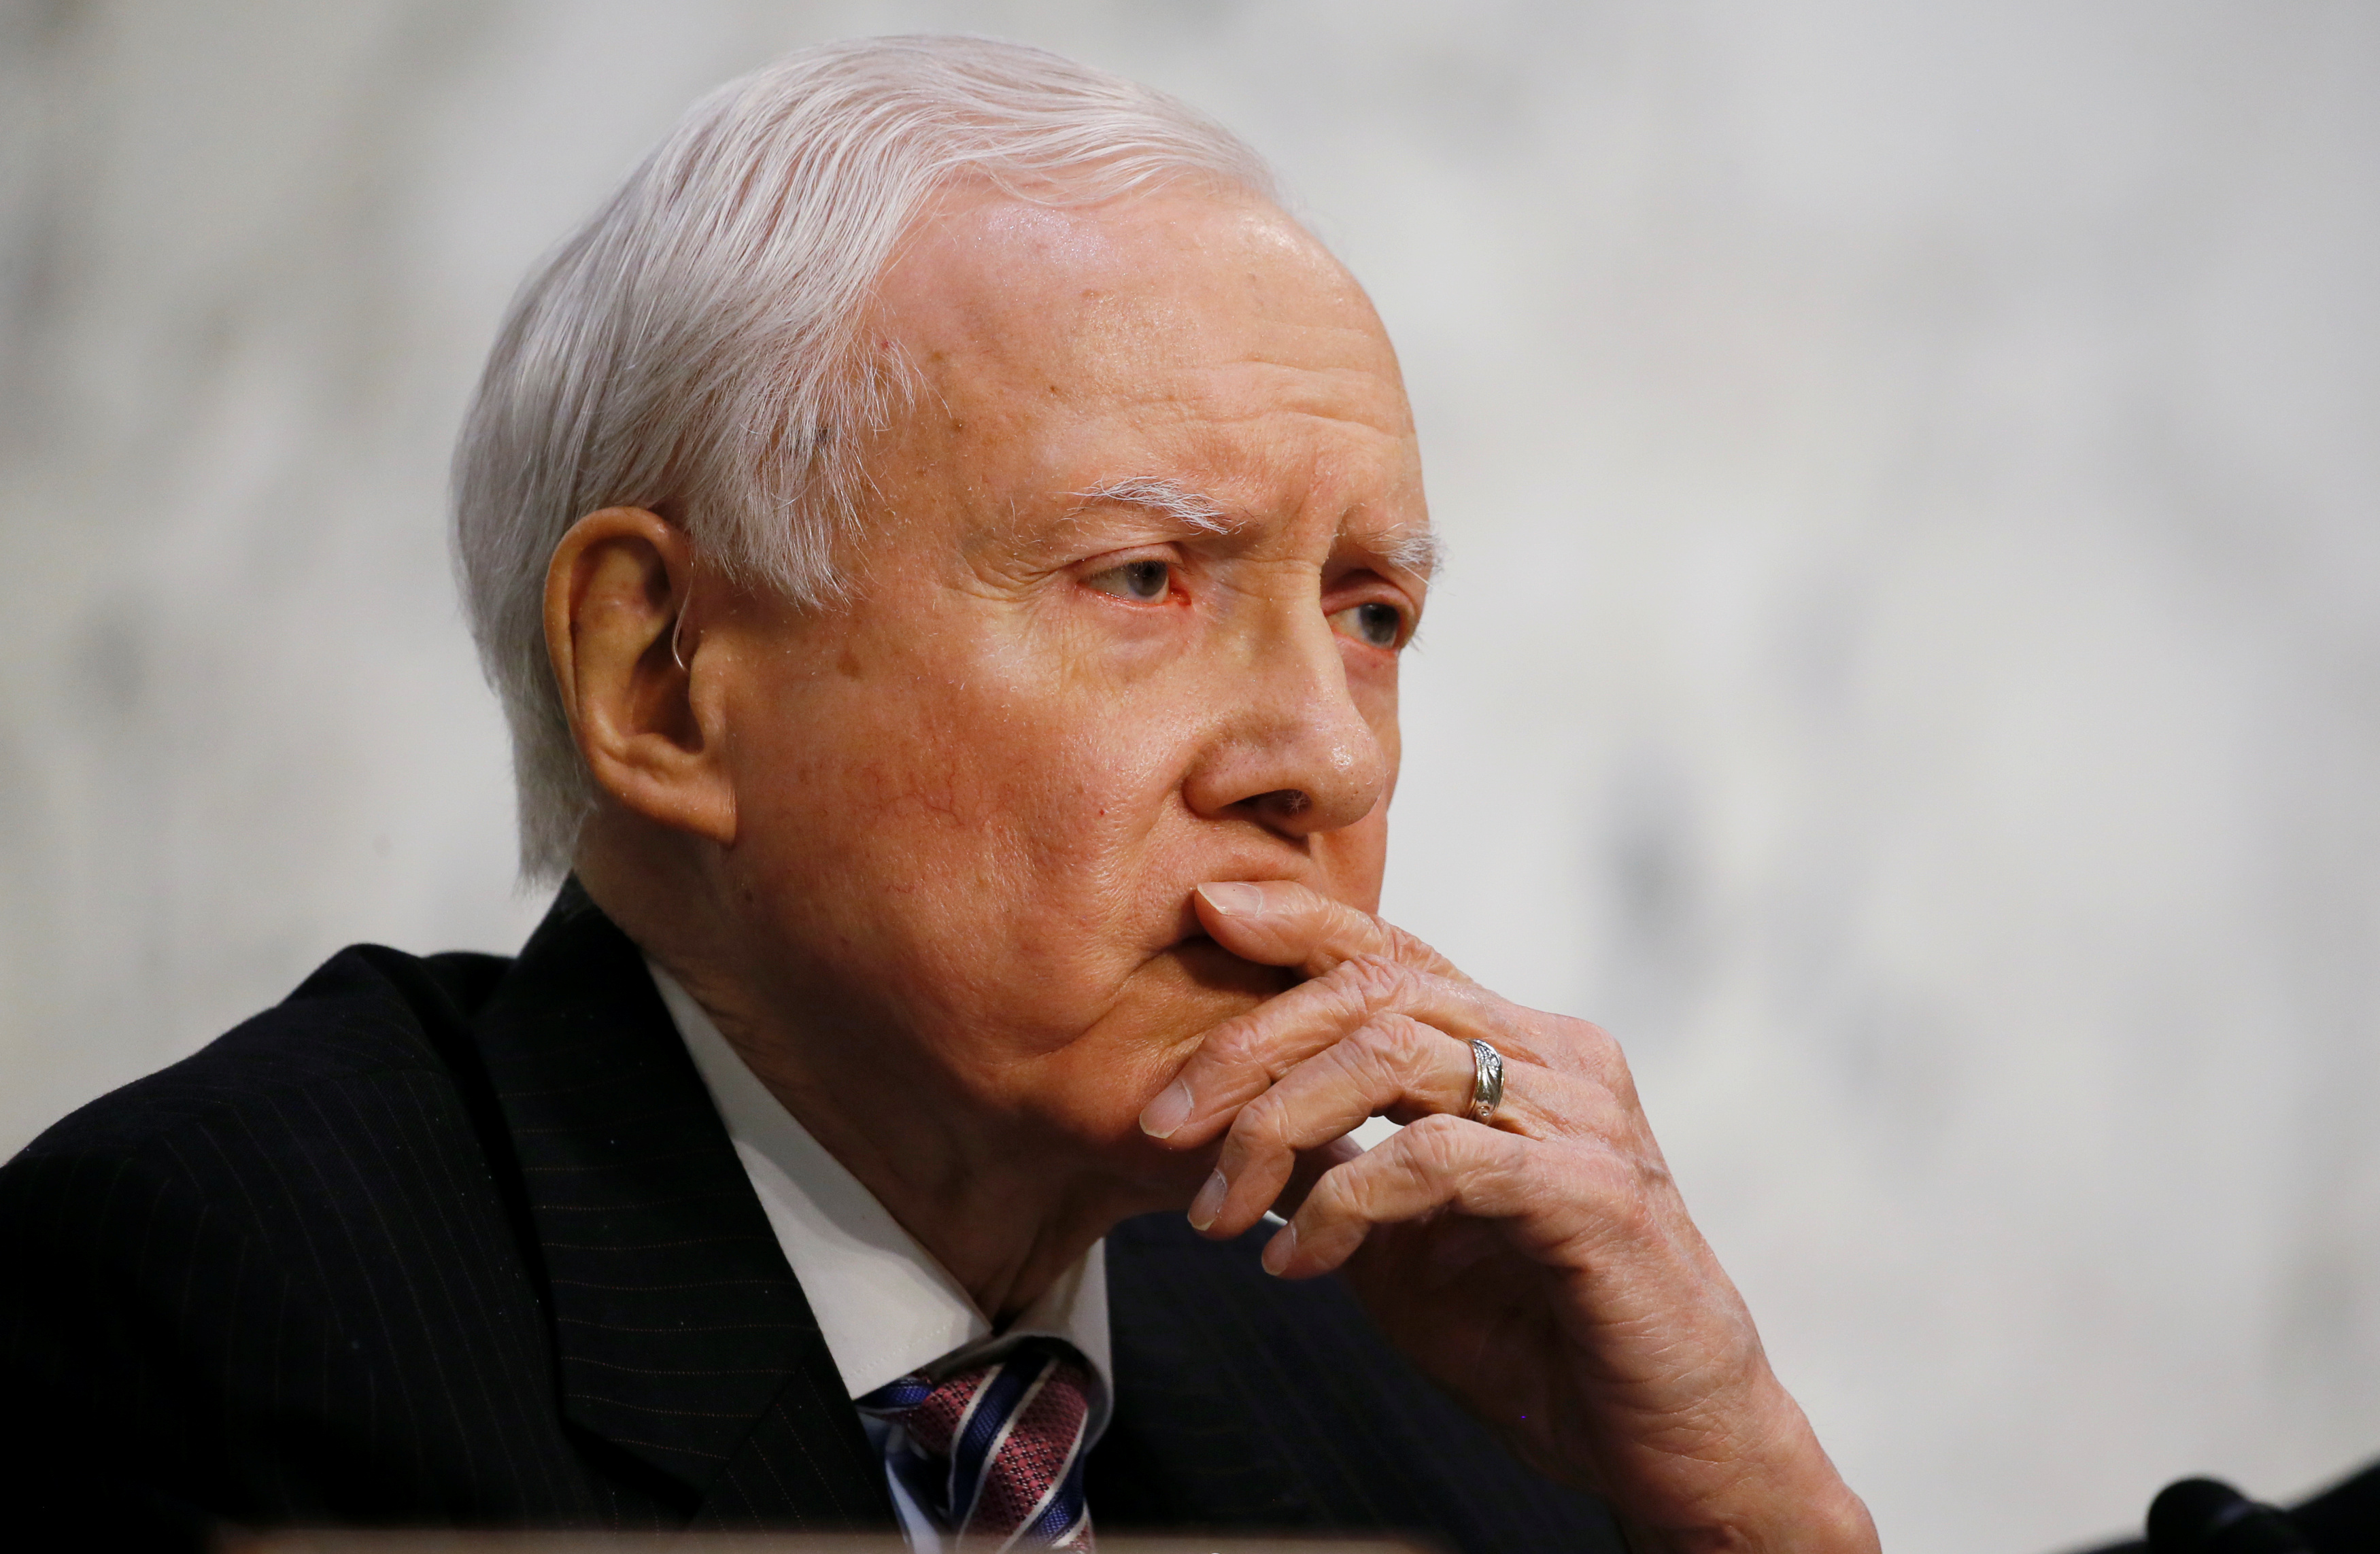 U.S. Senator Hatch listens to U.S. Supreme Court nominee judge Gorsuch during the third day of his Senate Judiciary Committee confirmation hearing in Washington